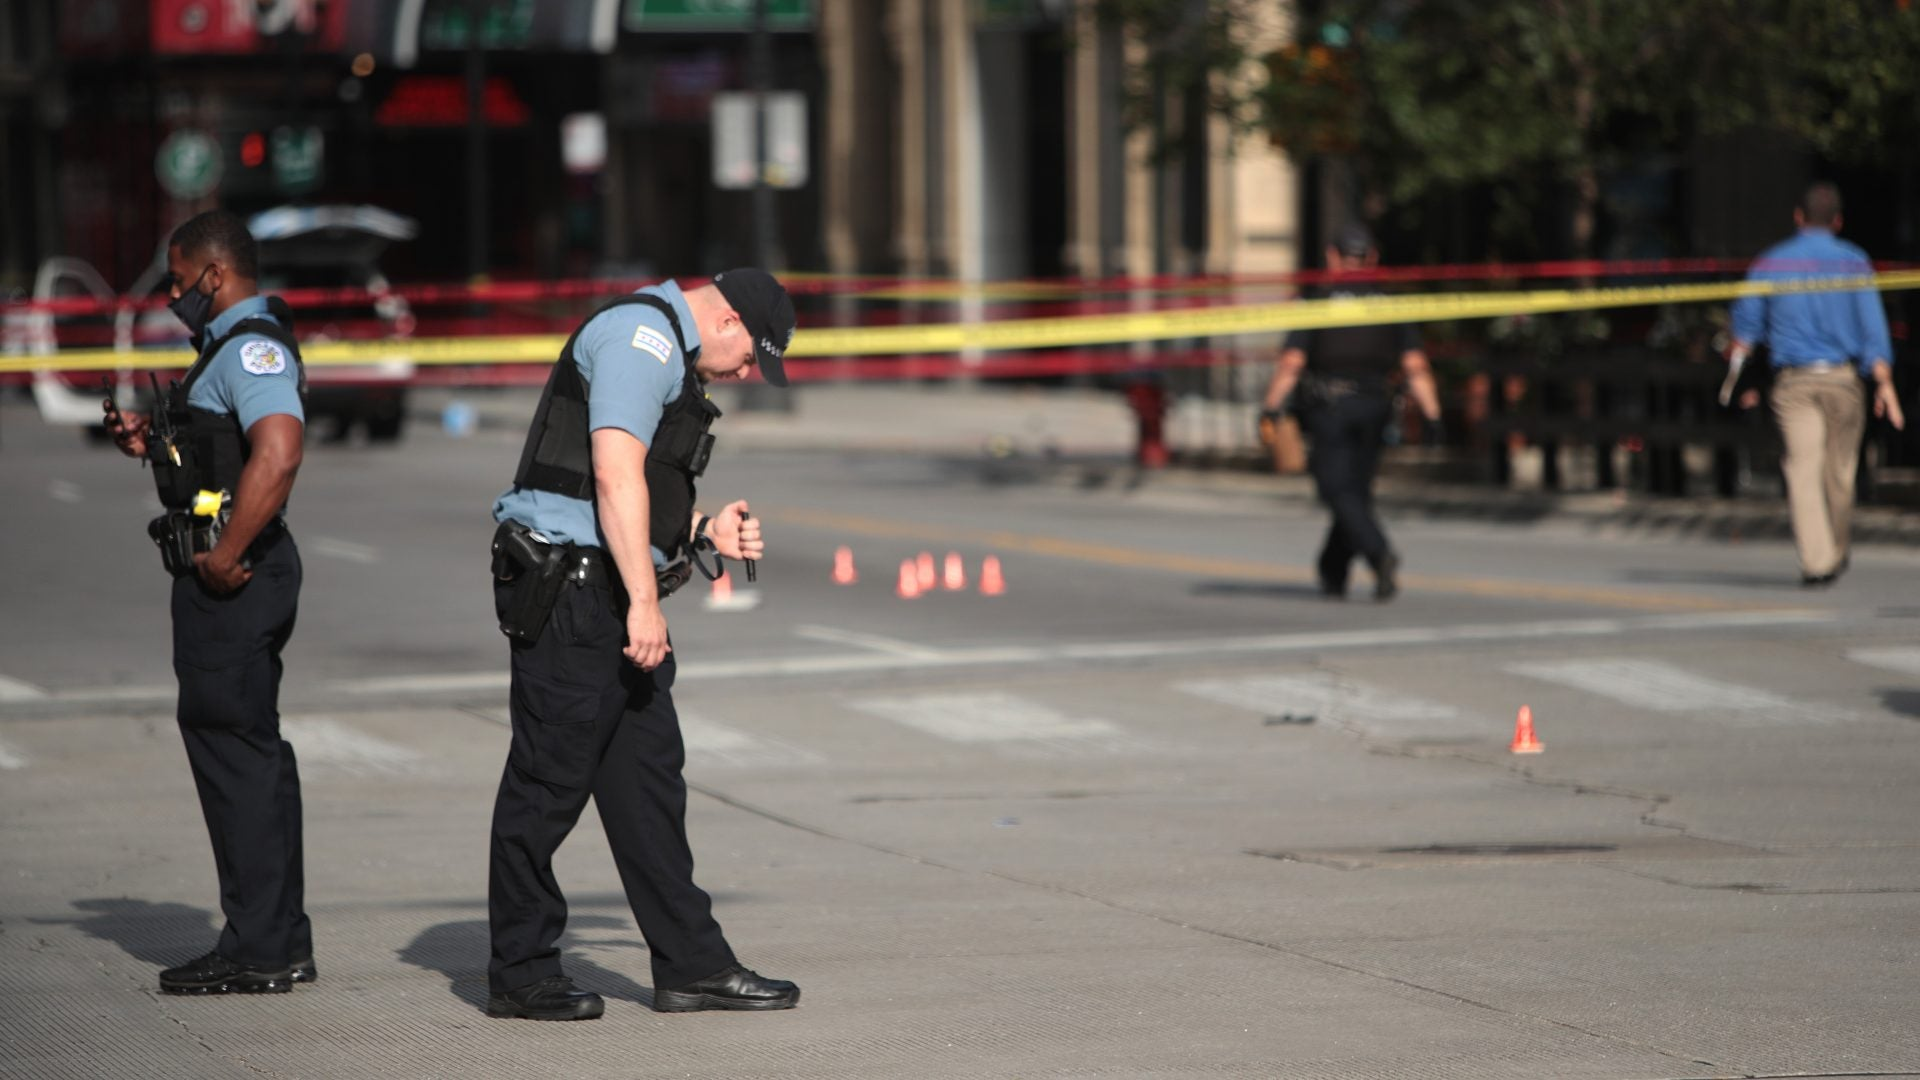 Police-Involved Shooting Leads To Unrest In Chicago